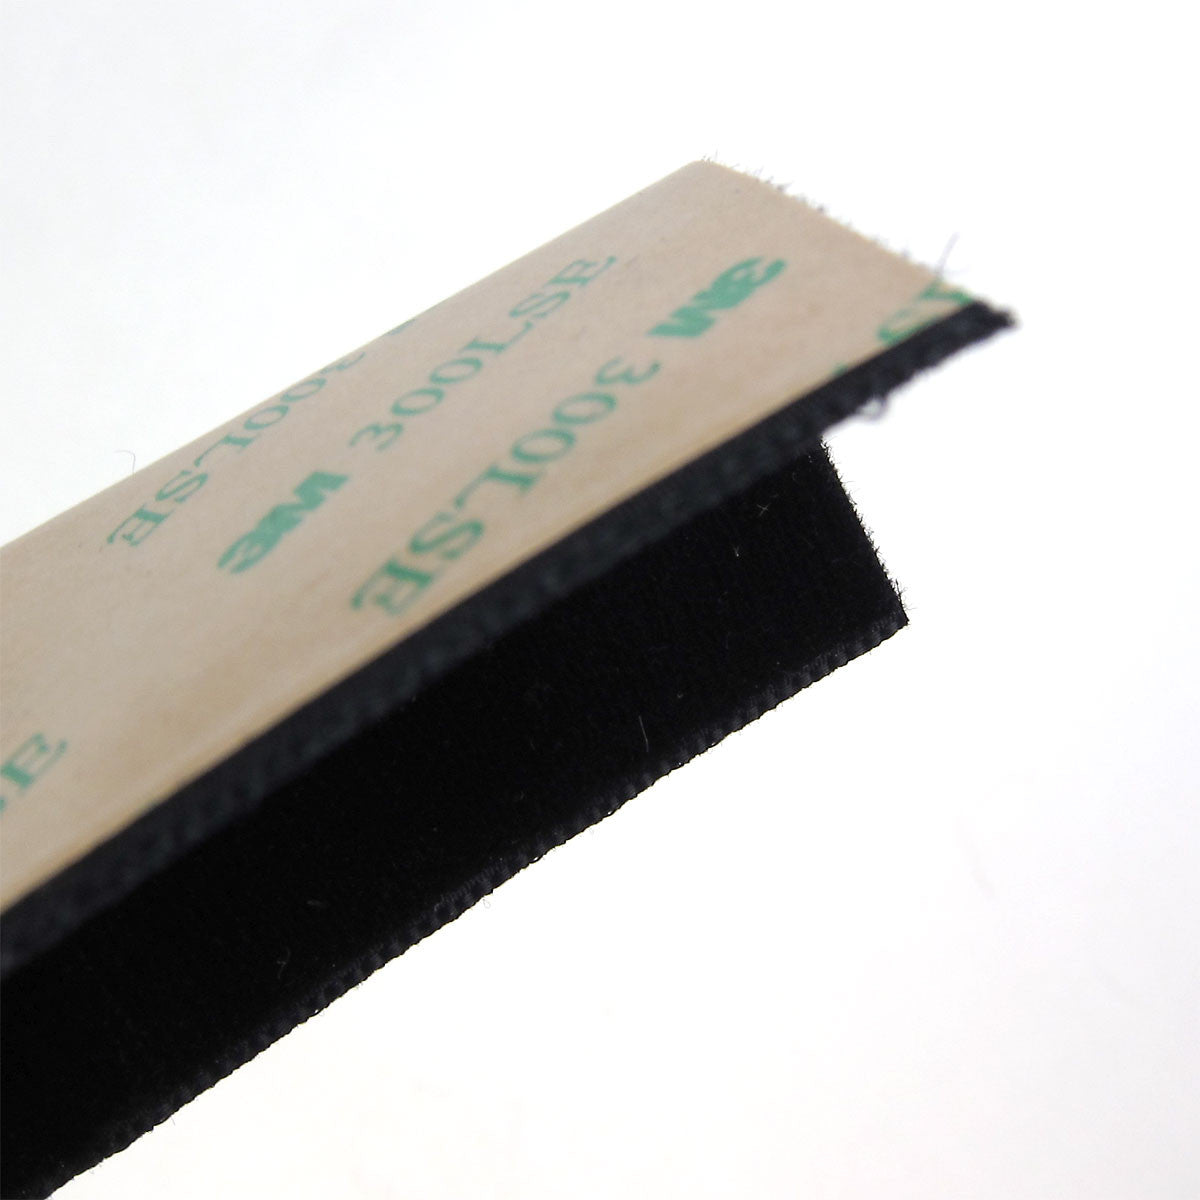 Mobile Fidelity: Replacement Record Brush Pads - 2 Units detail 2